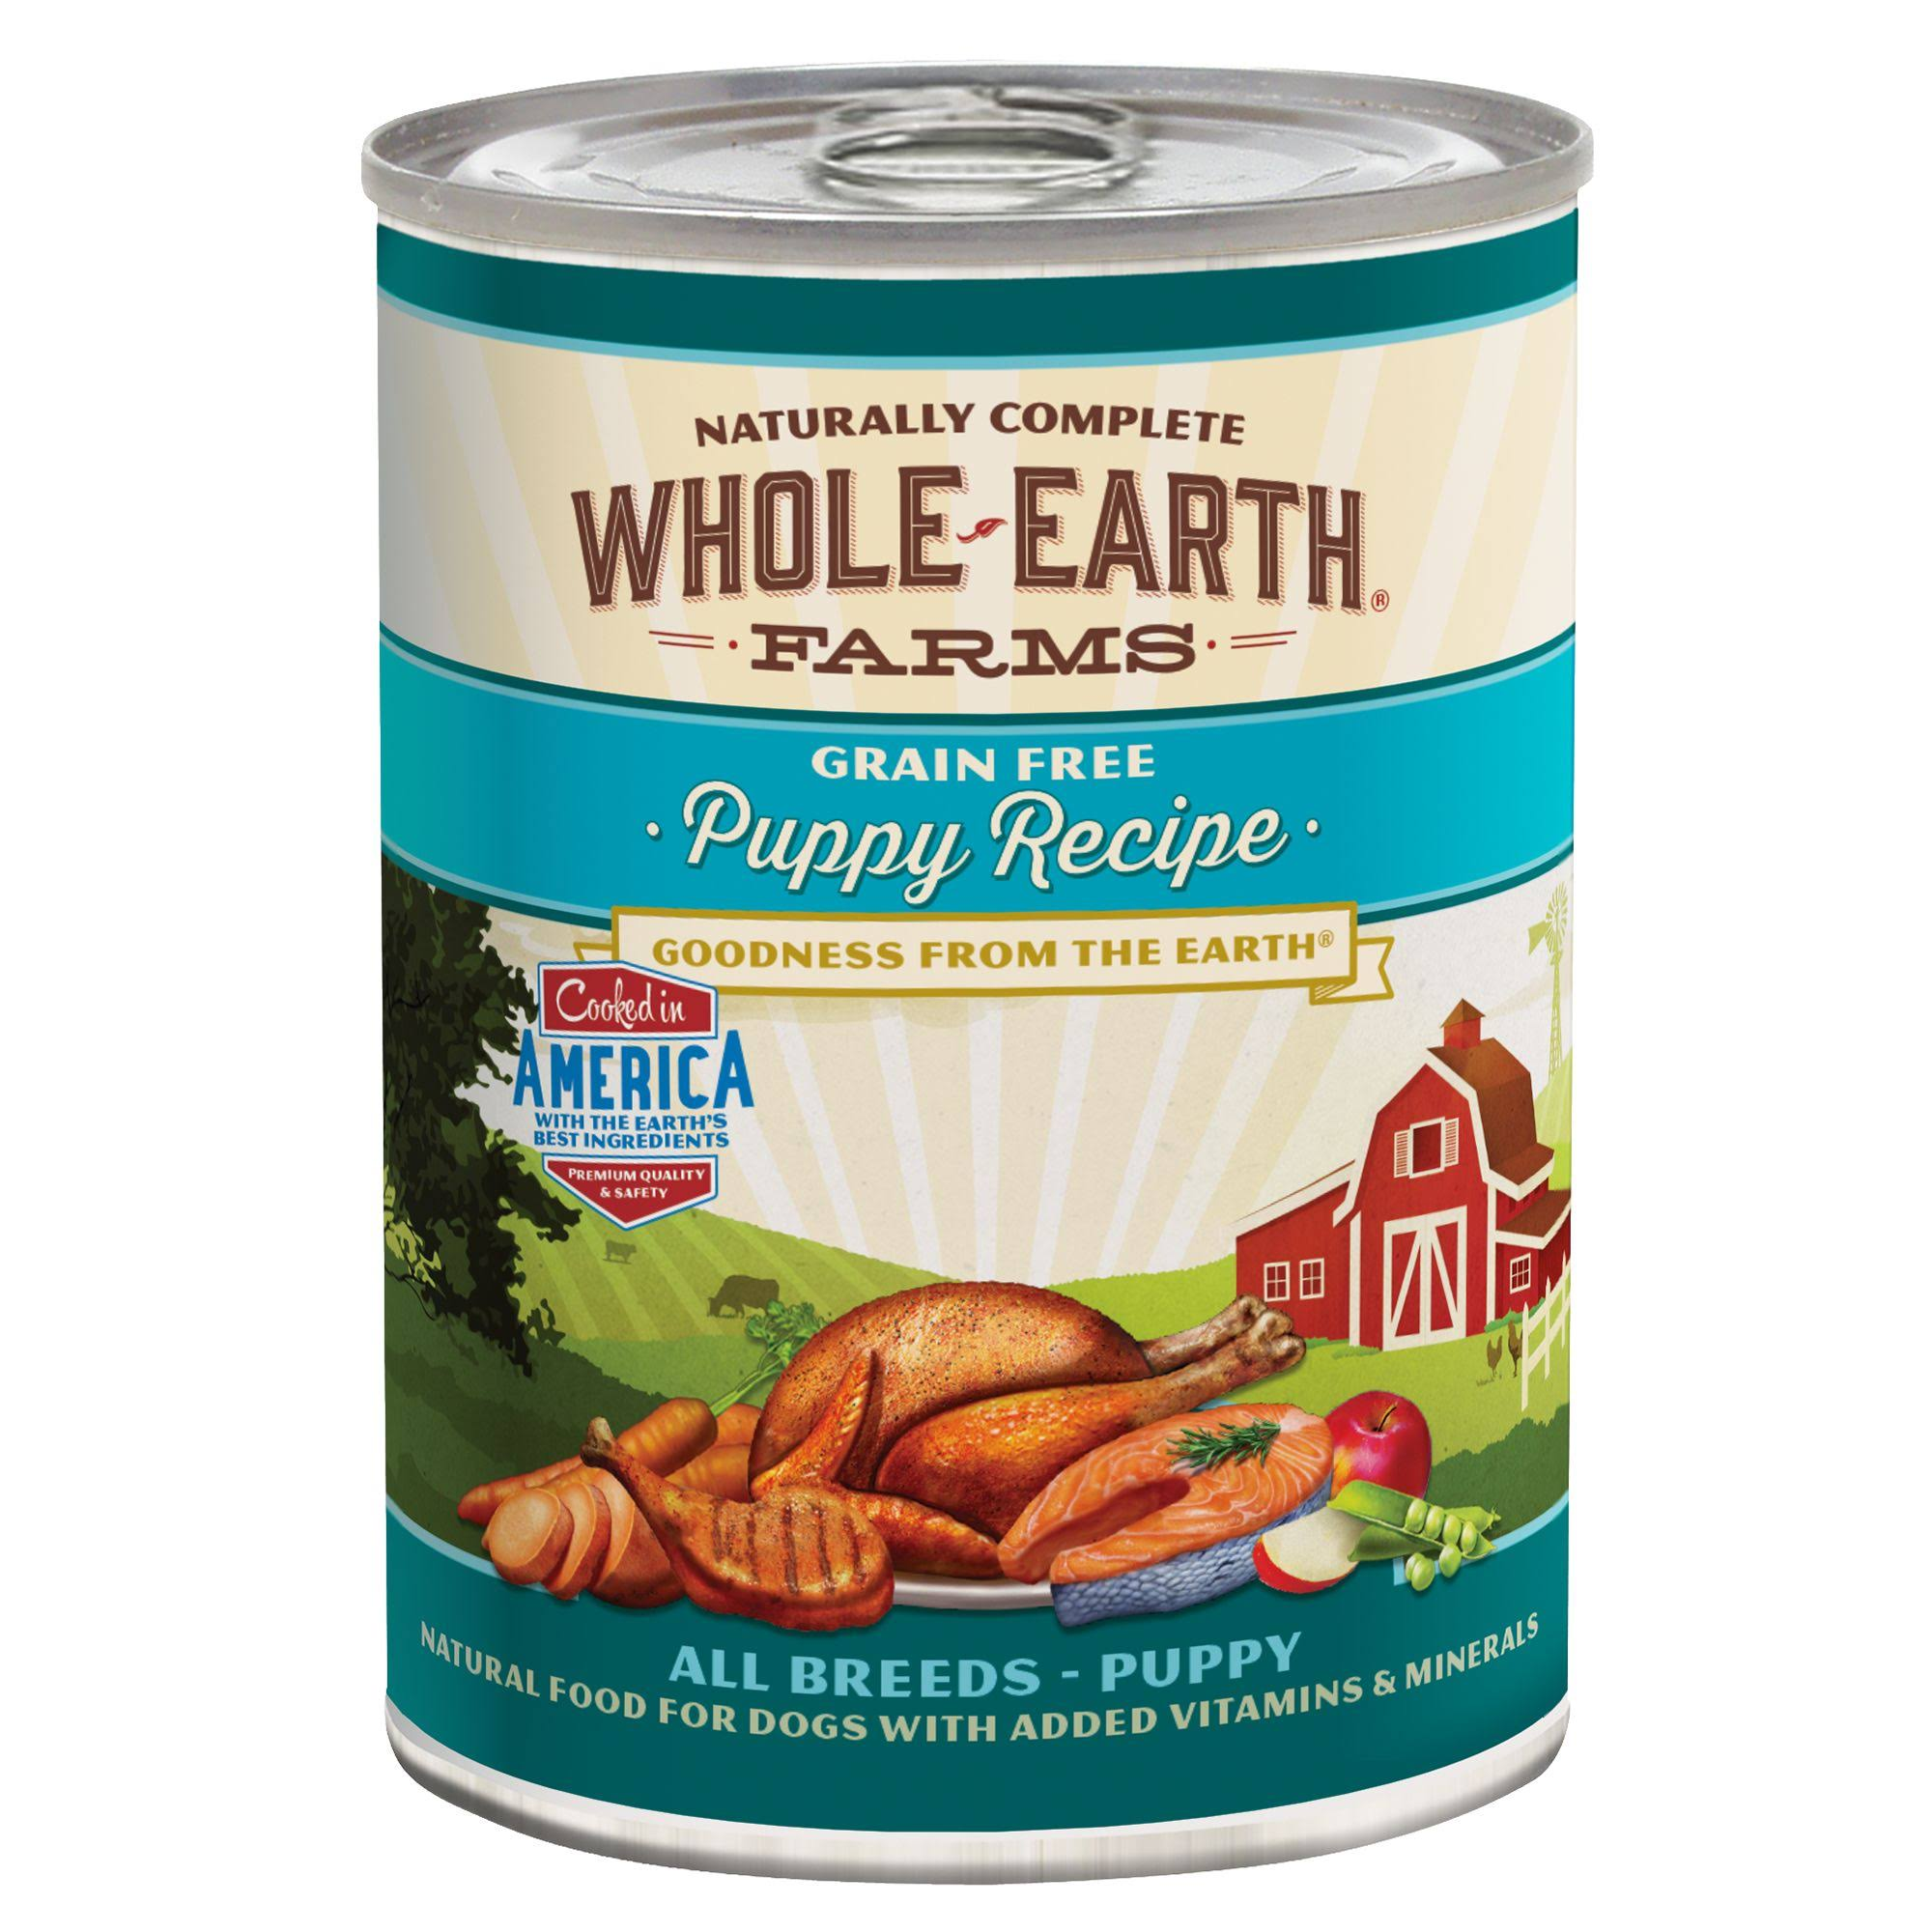 Whole Earth Farms Grain Free Canned Food - Puppy Recipe, 13.2oz